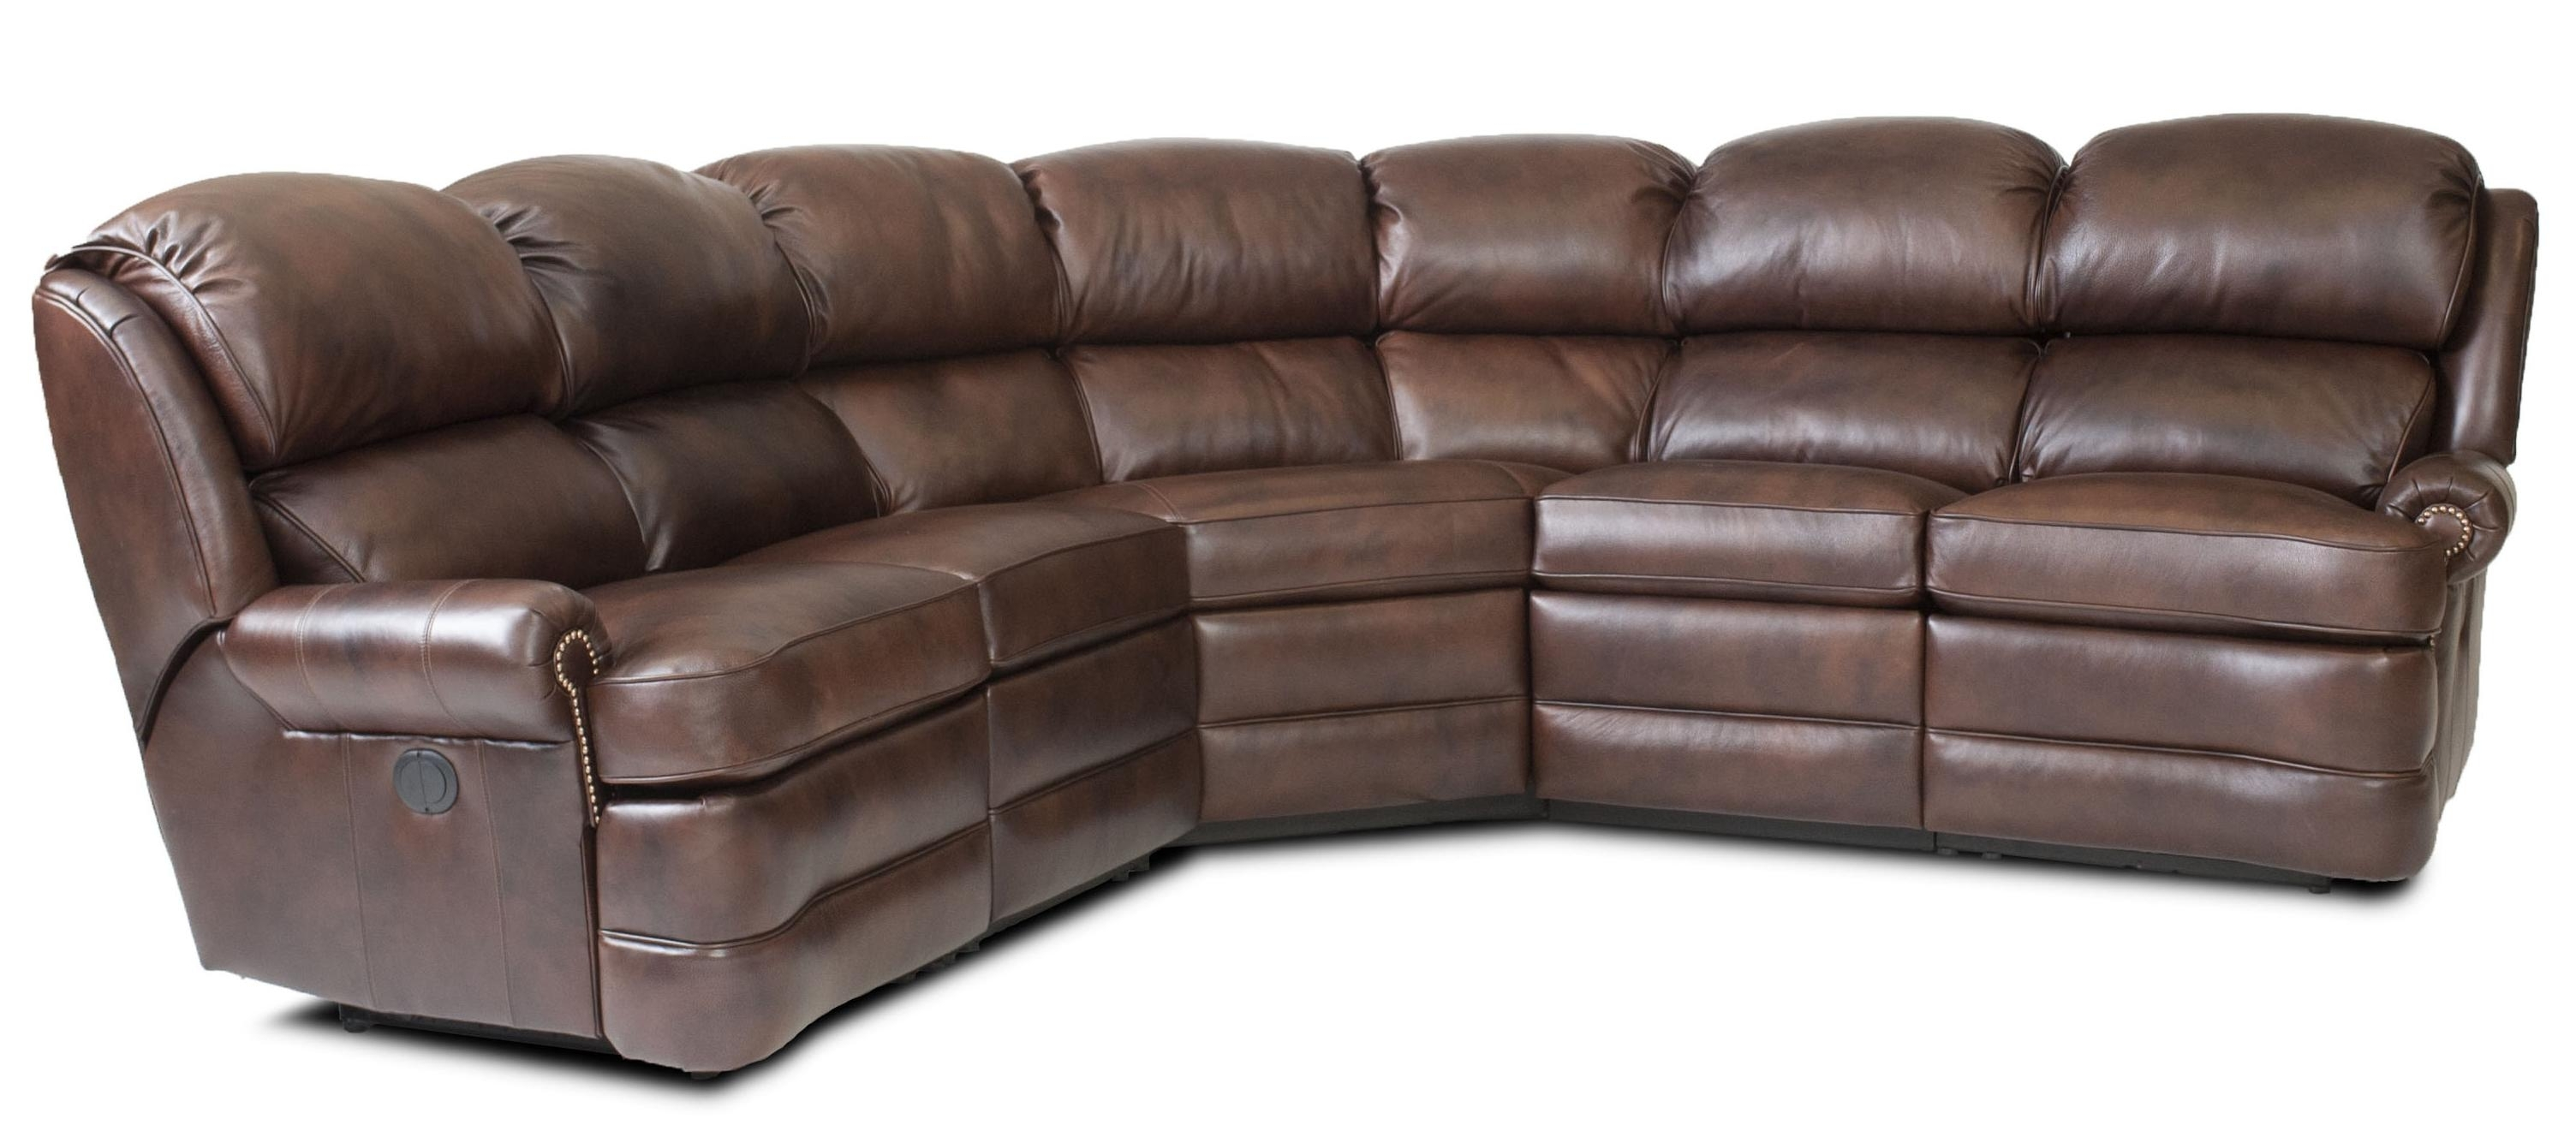 Transitional 5 Piece Reclining Sectional Sofa With Small Rolled Regarding Most Up To Date Overstuffed Sofas